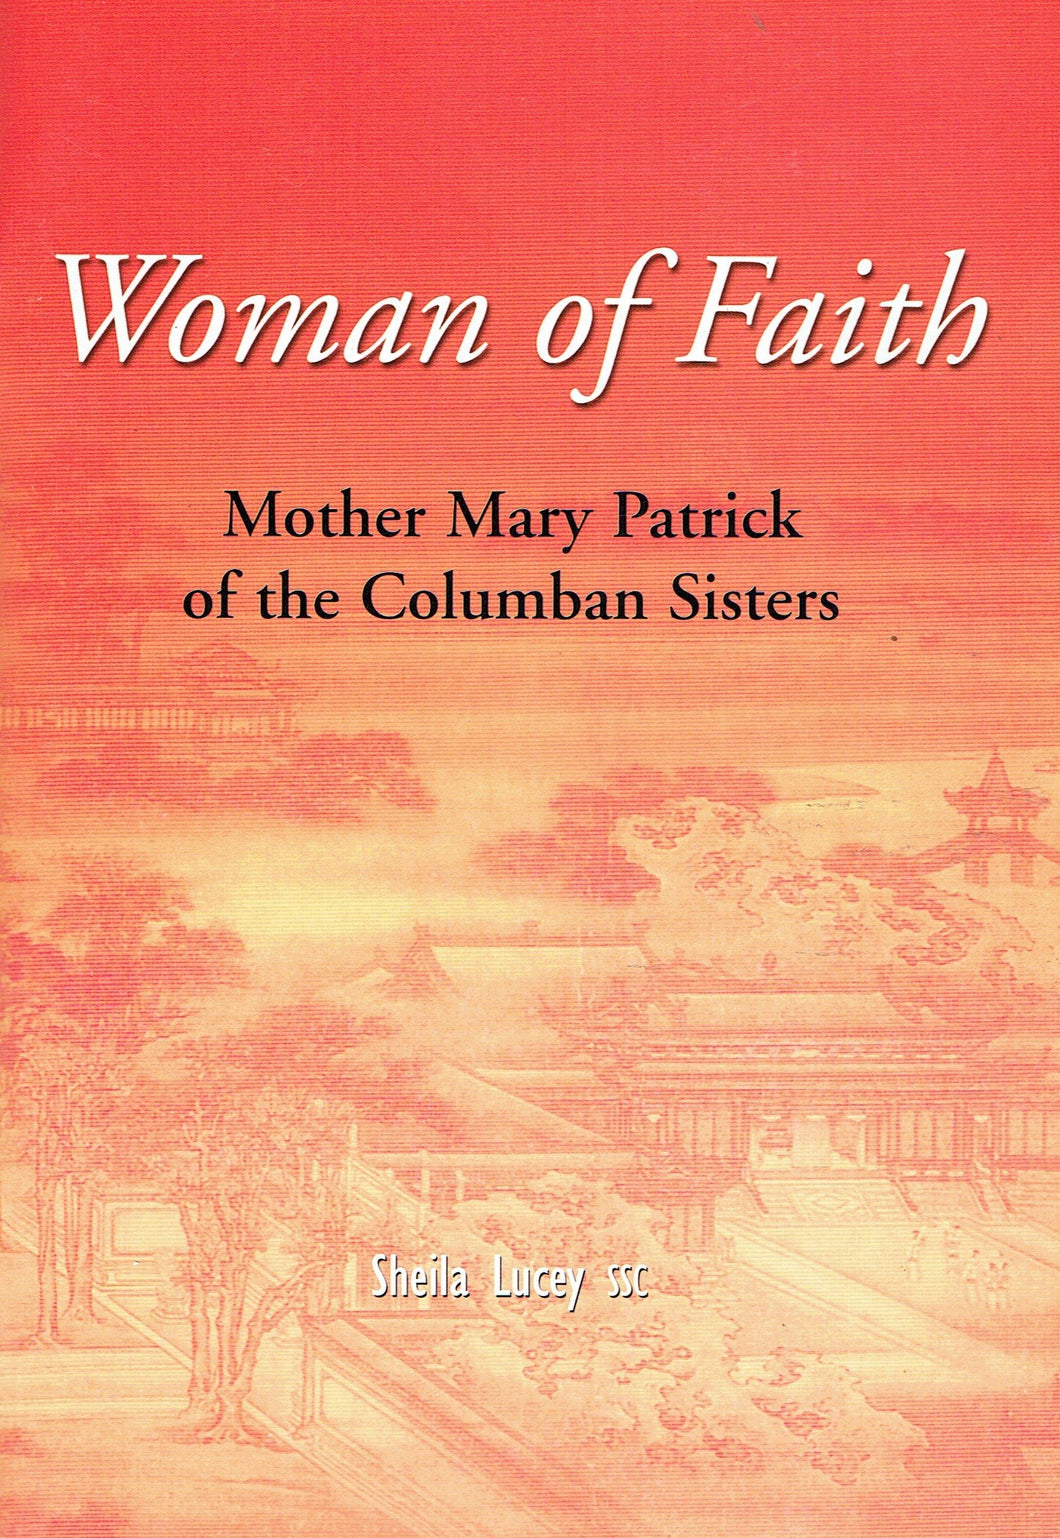 Woman of Faith: Mother Mary Patrick of the Columban Sisters